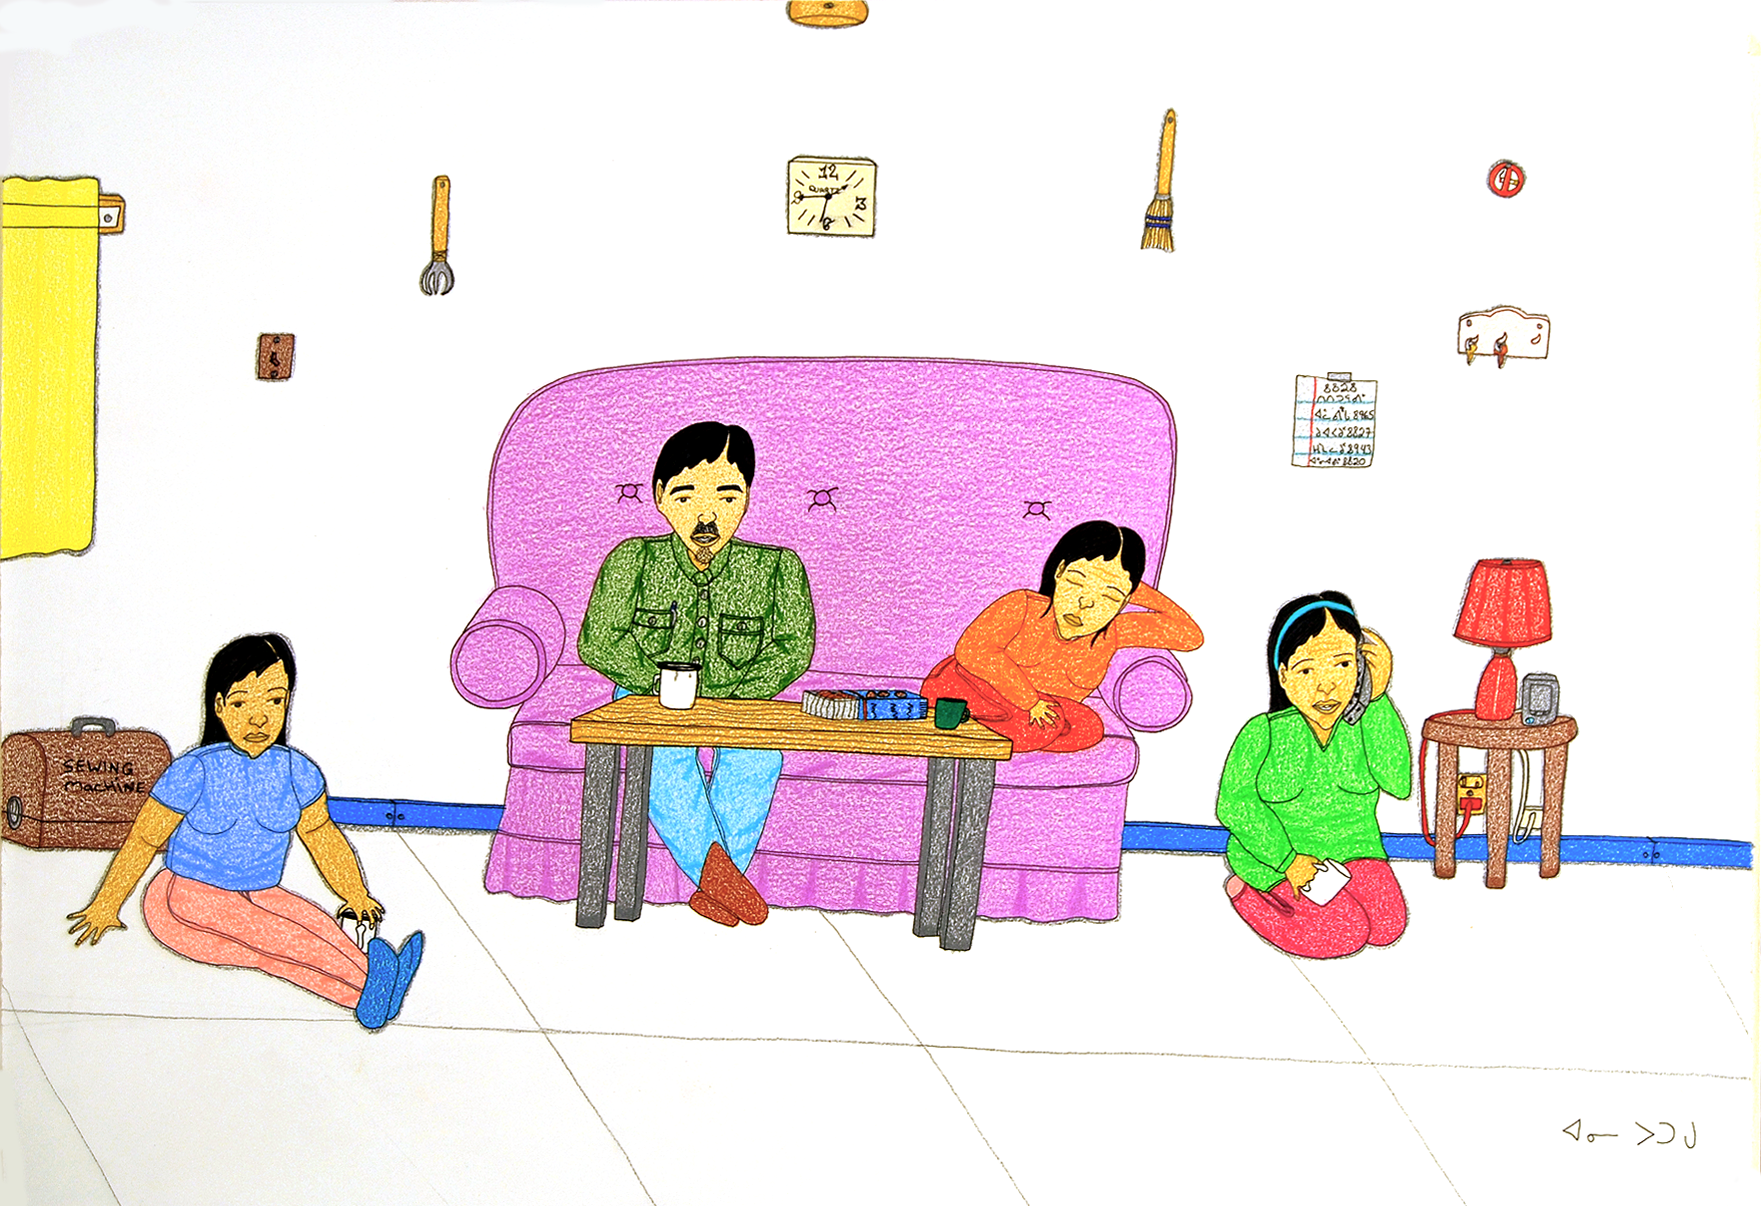 Living Room, 2006, by Annie Pootoogook. Purchased with funds provided by the Sobey Art Foundation, Stellarton, Nova Scotia, 2007.